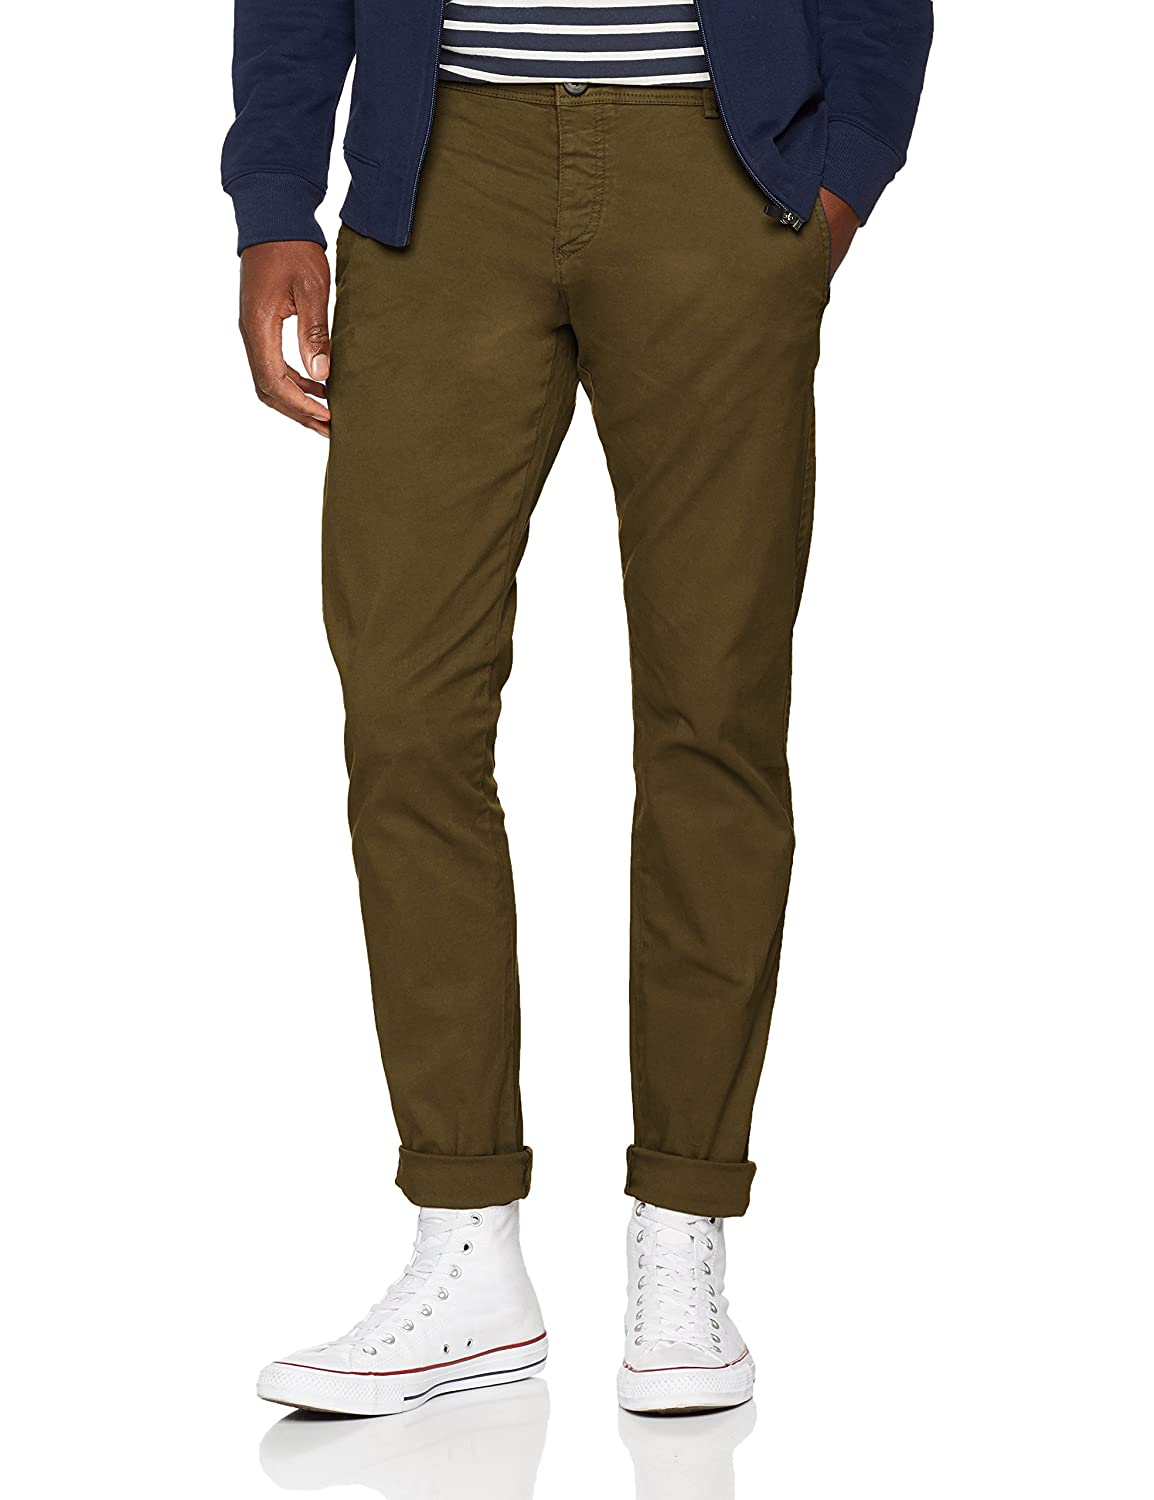 SELECTED HOMME Slhskinny-Luca Olive Night Pants W Noos, Pantalones para Hombre